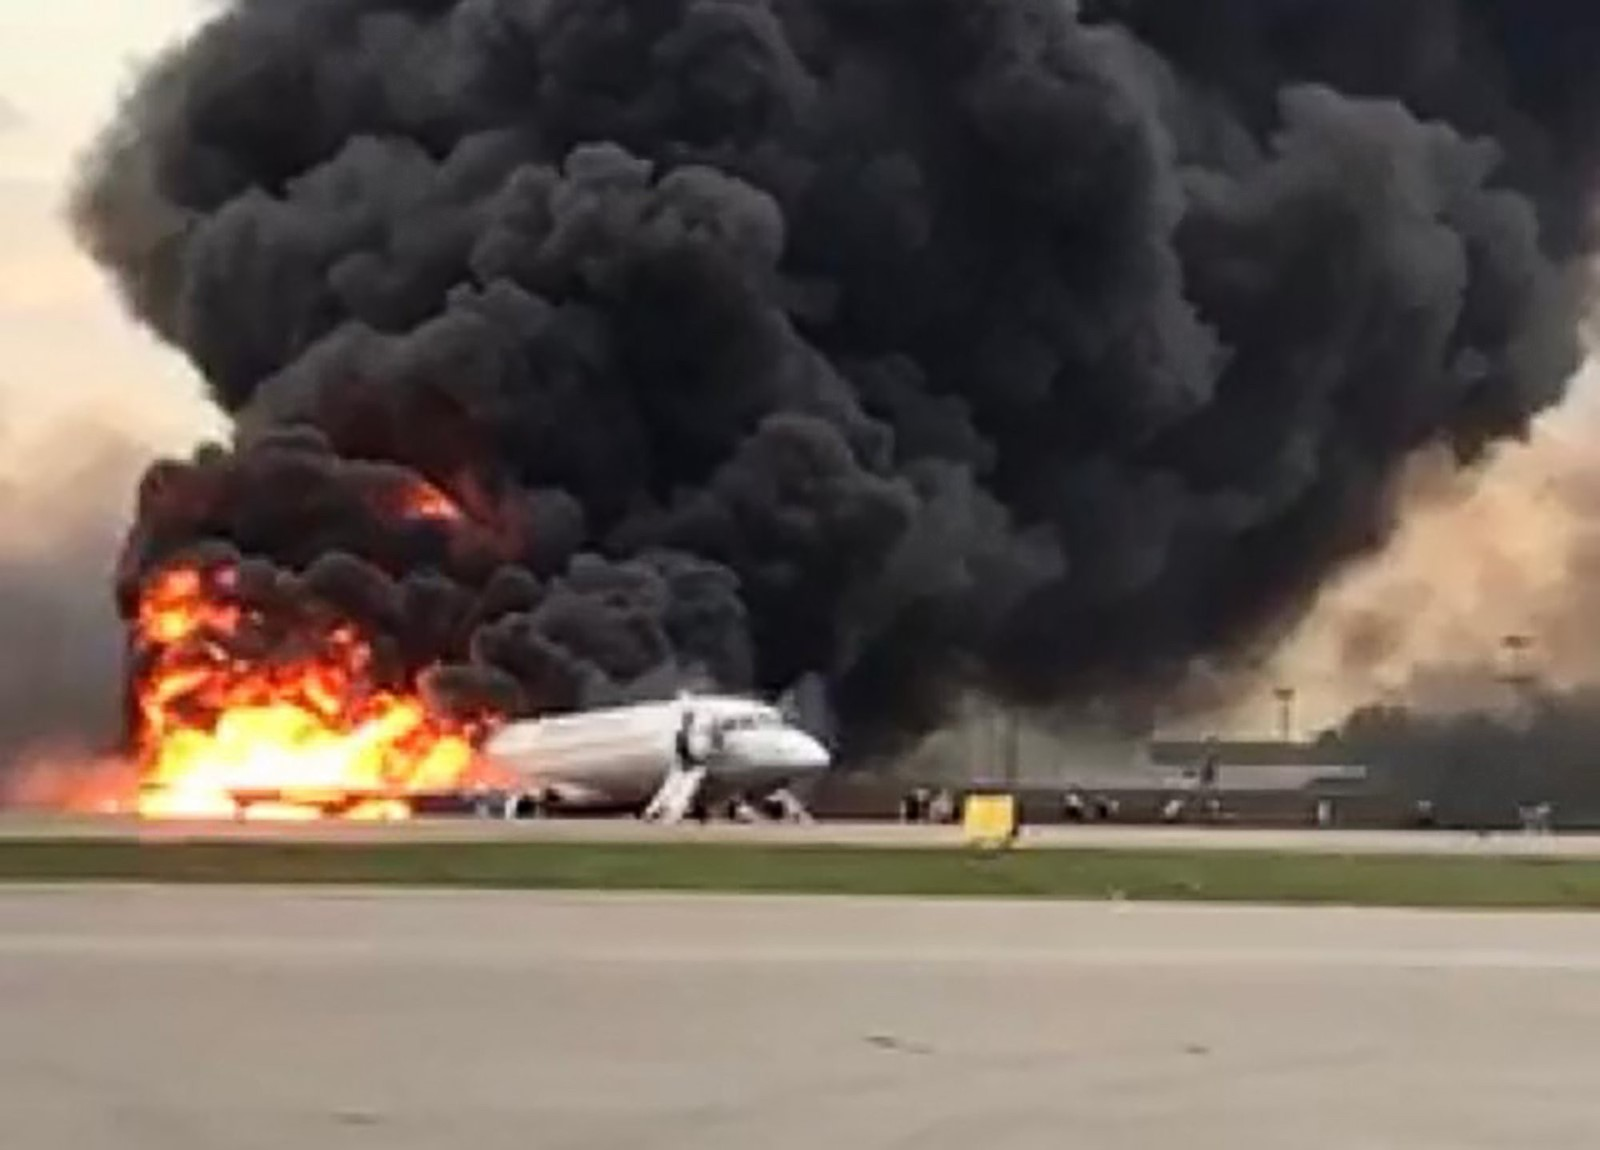 41 killed in fiery passenger jet accident at Moscow airport - South